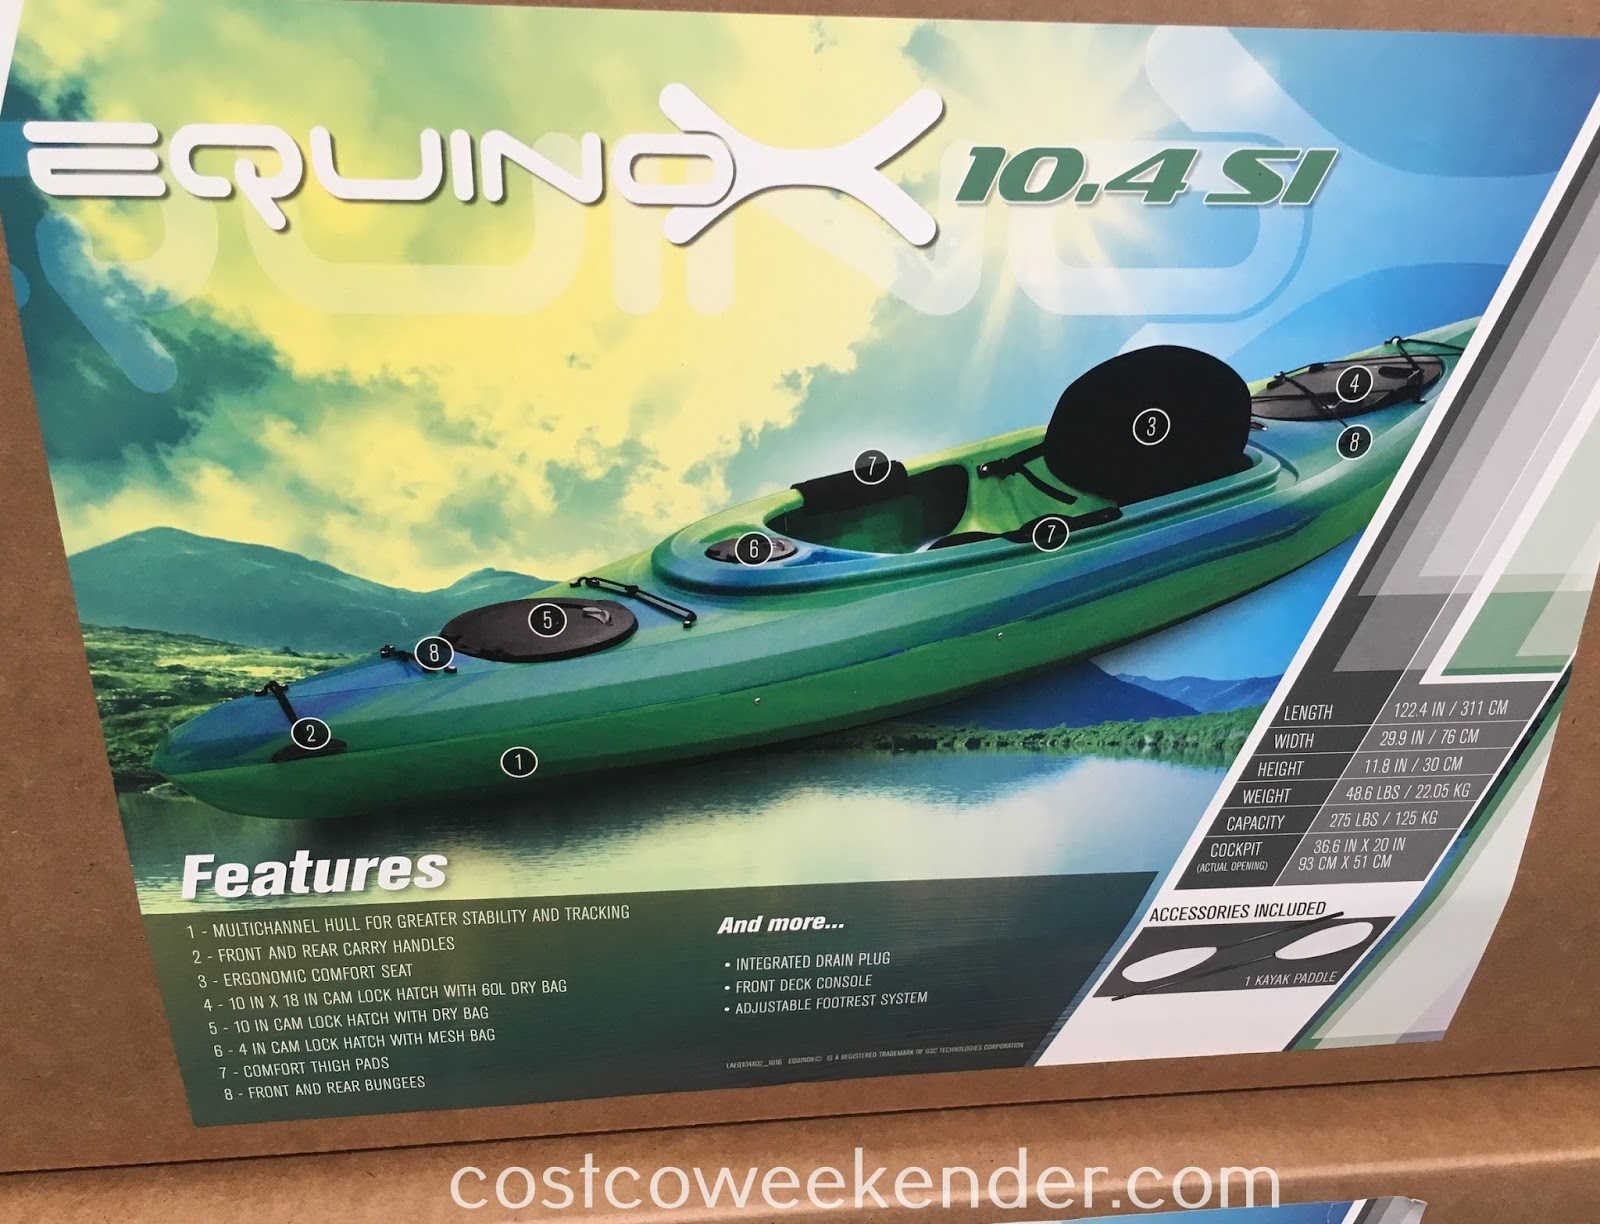 Costco Kayak Related Keywords & Suggestions - Costco Kayak